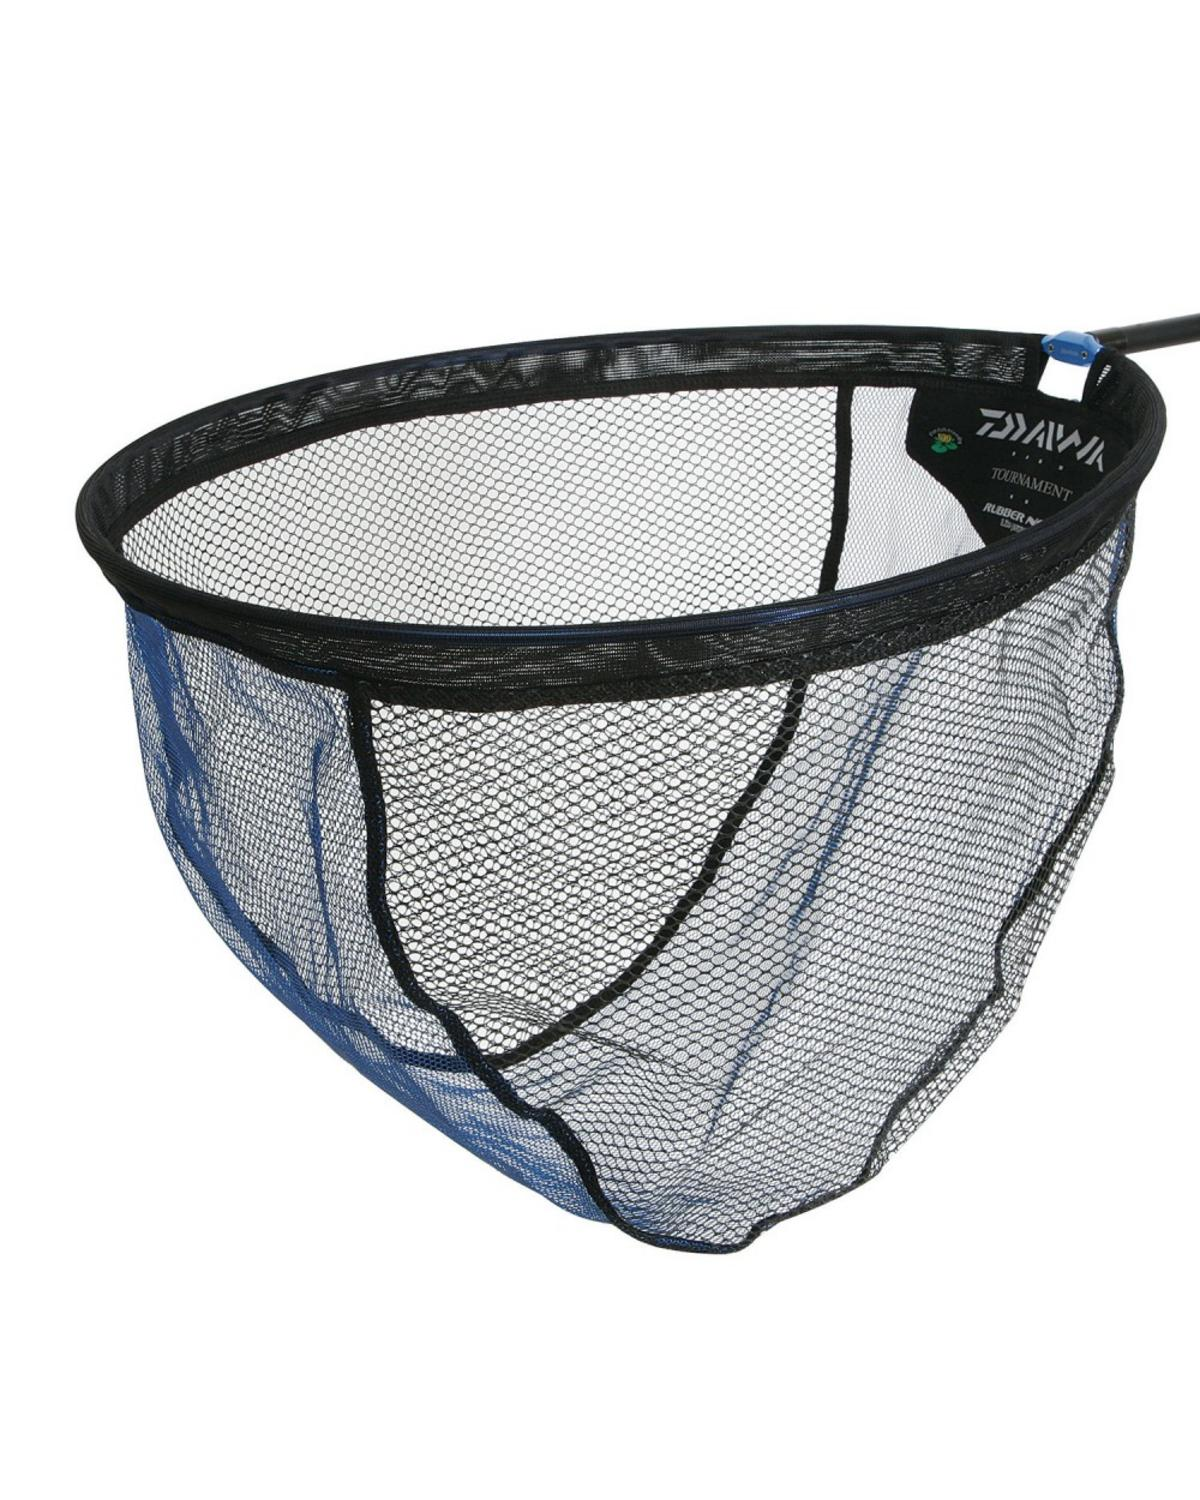 Tournament Litepower Rubber Landing Net Heads Model DTLPLN